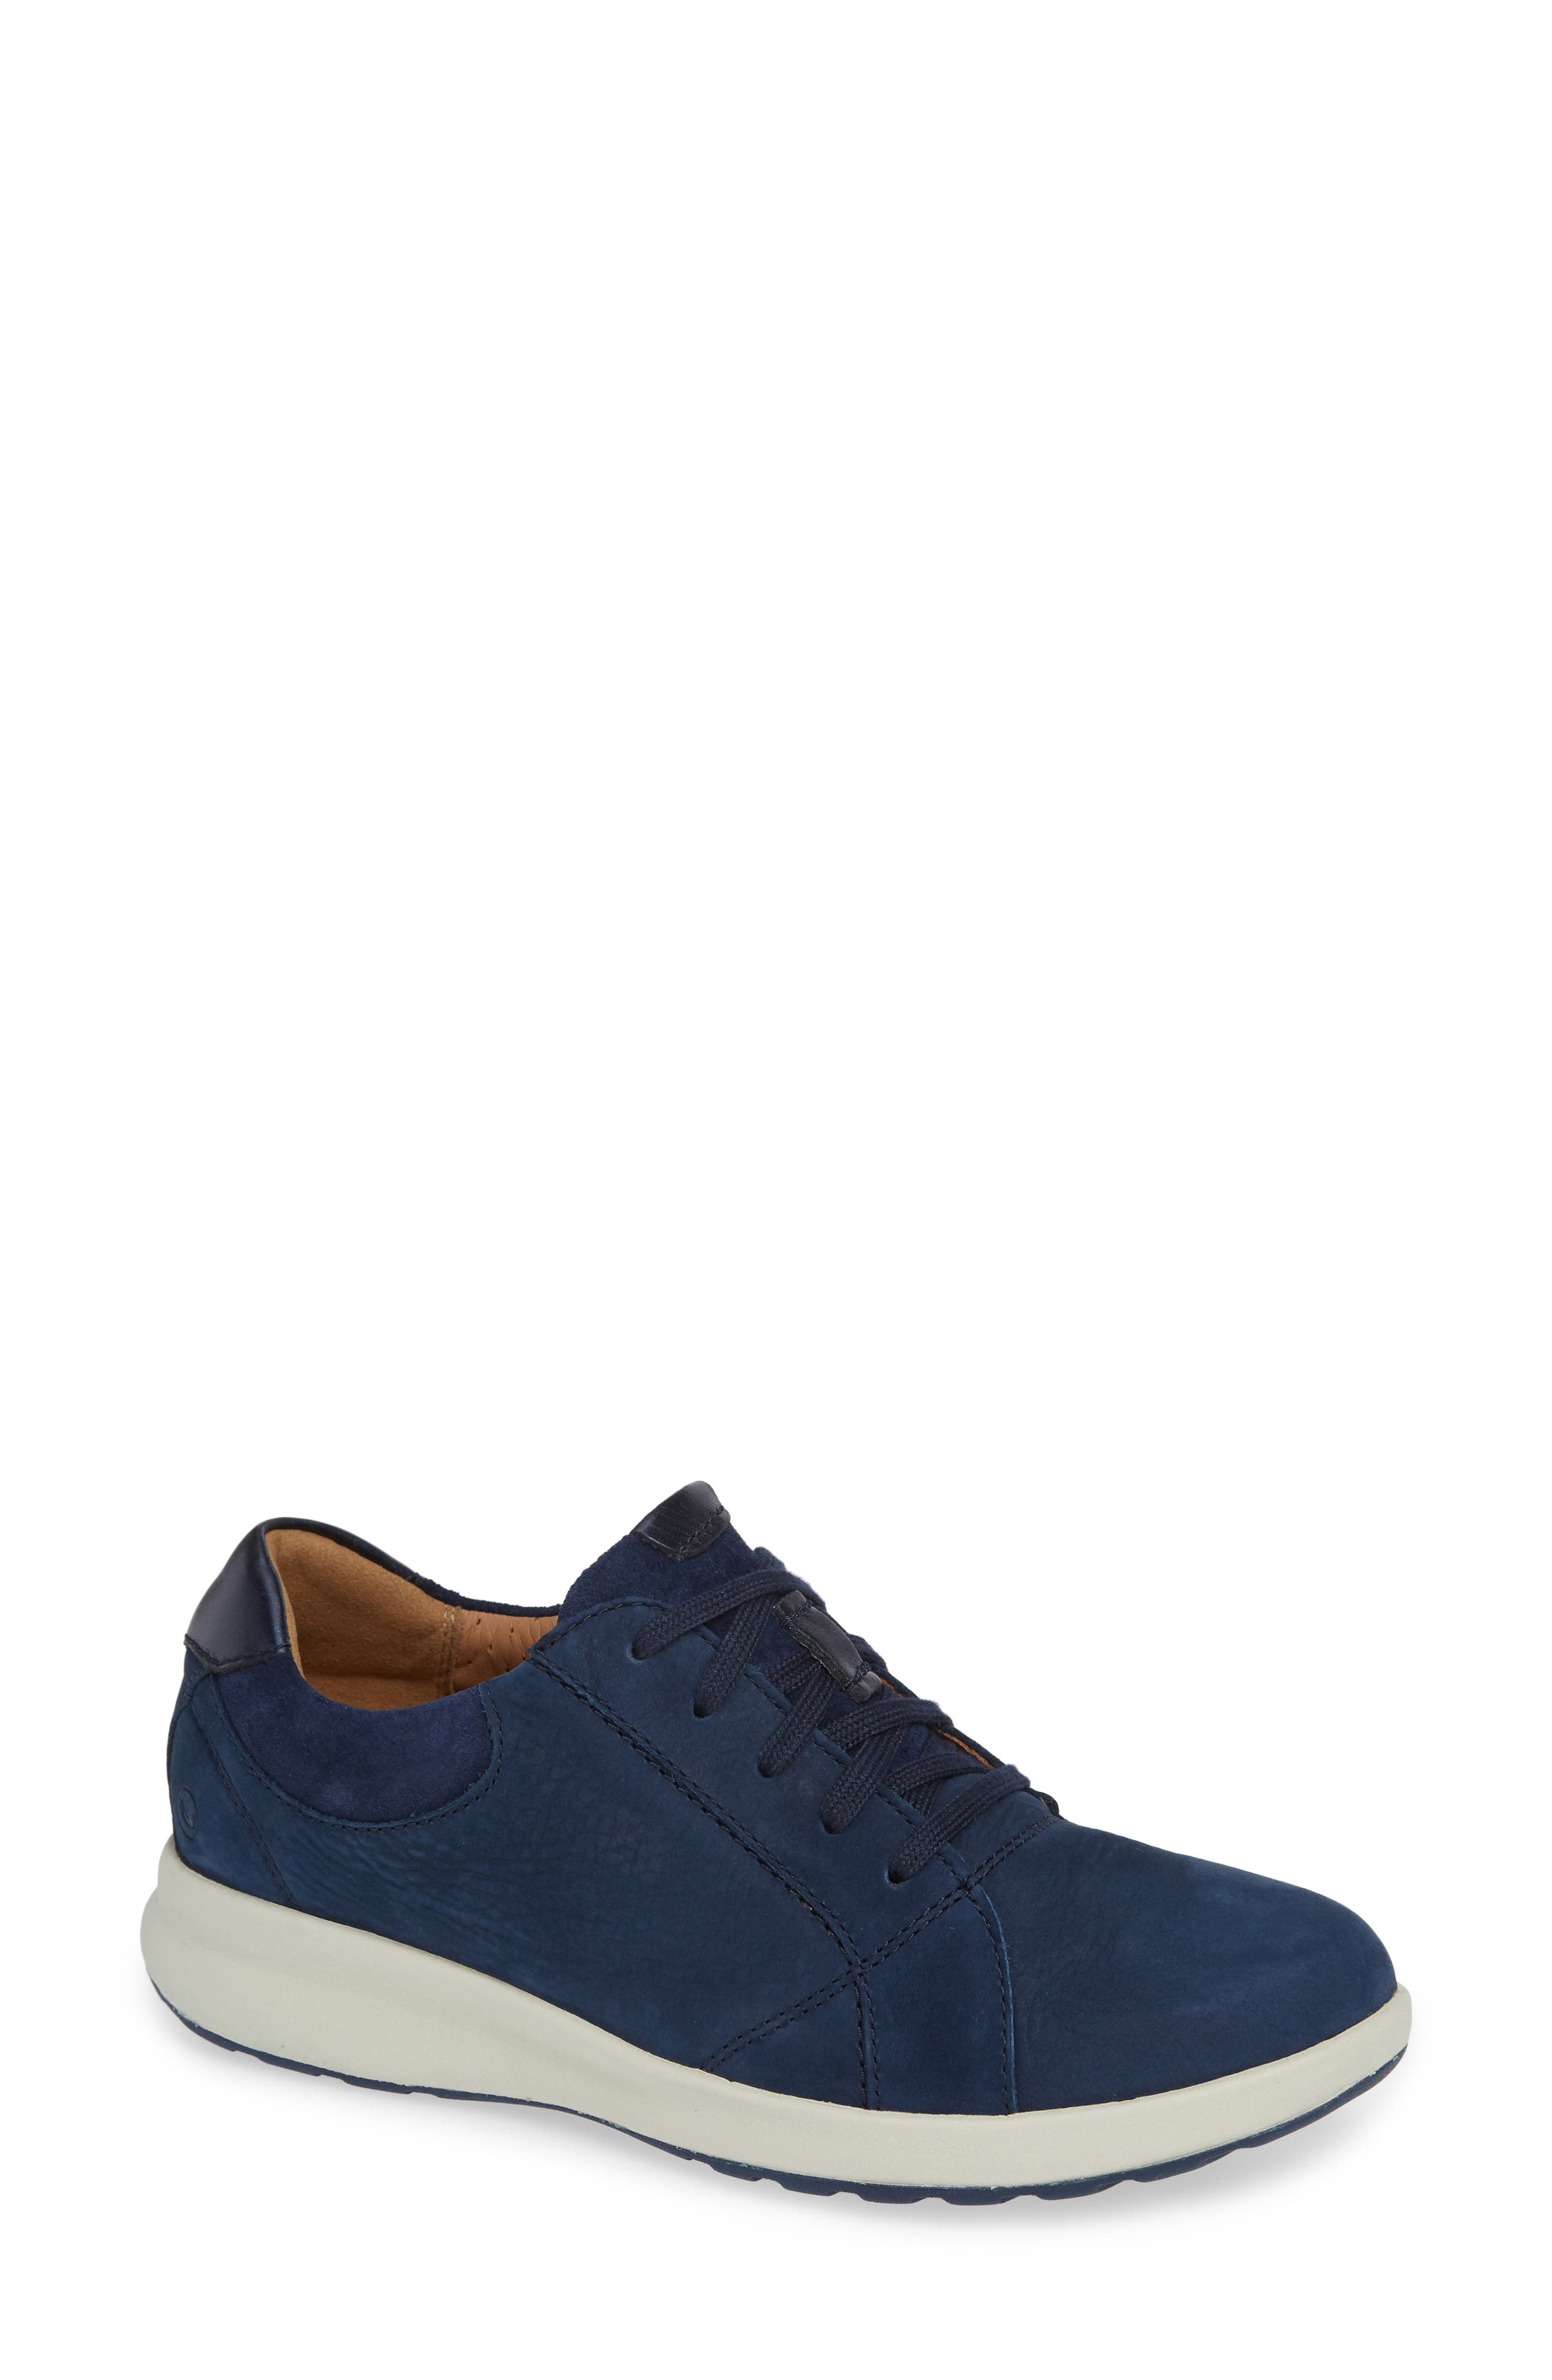 UnAdorn Lace-Up Sneaker,                         Main,                         color, NAVY NUBUCK